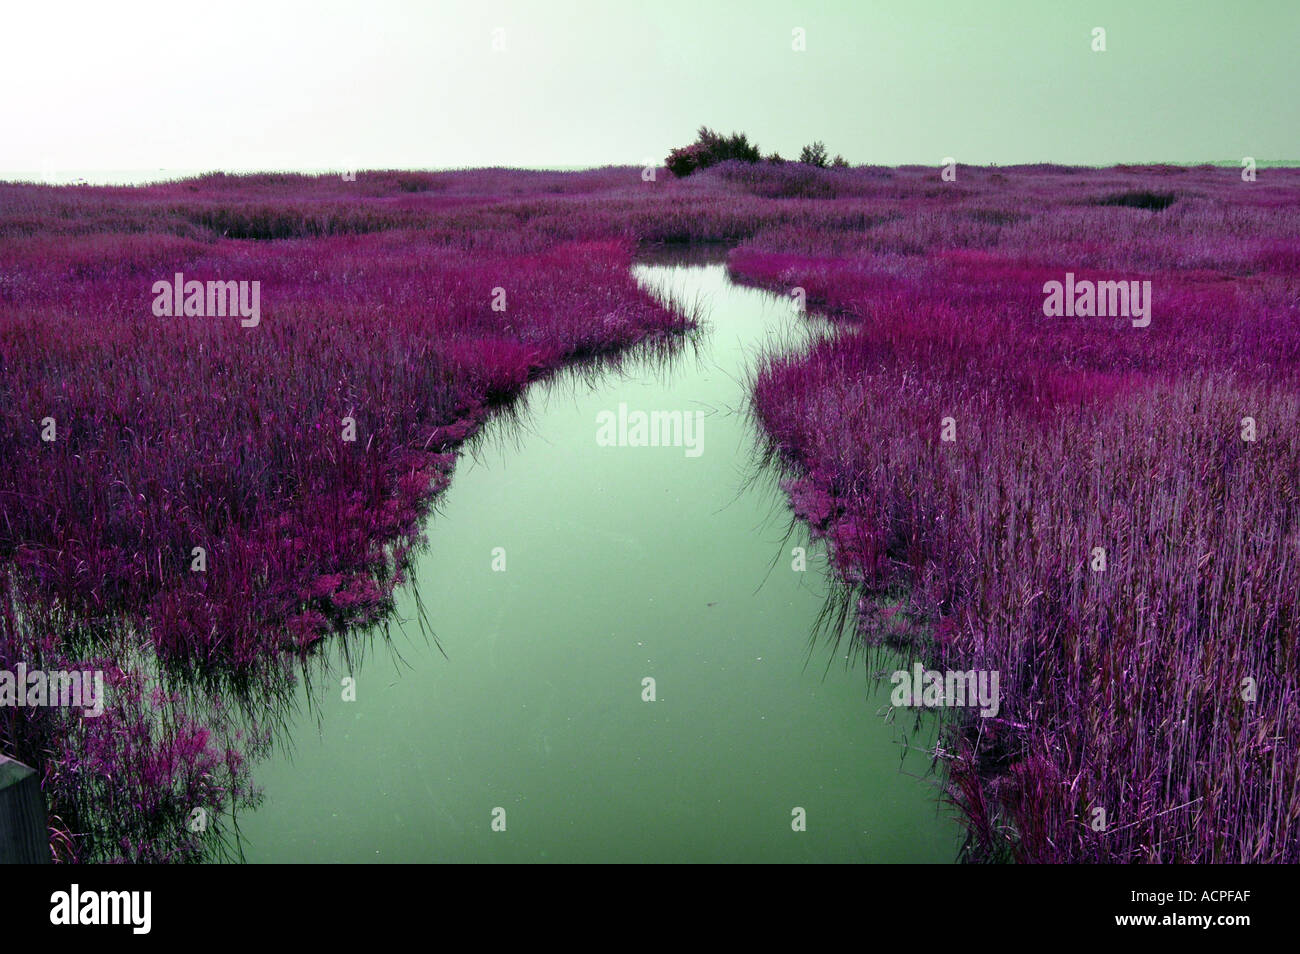 A greenish river with purple grass surreal landscape - Stock Image